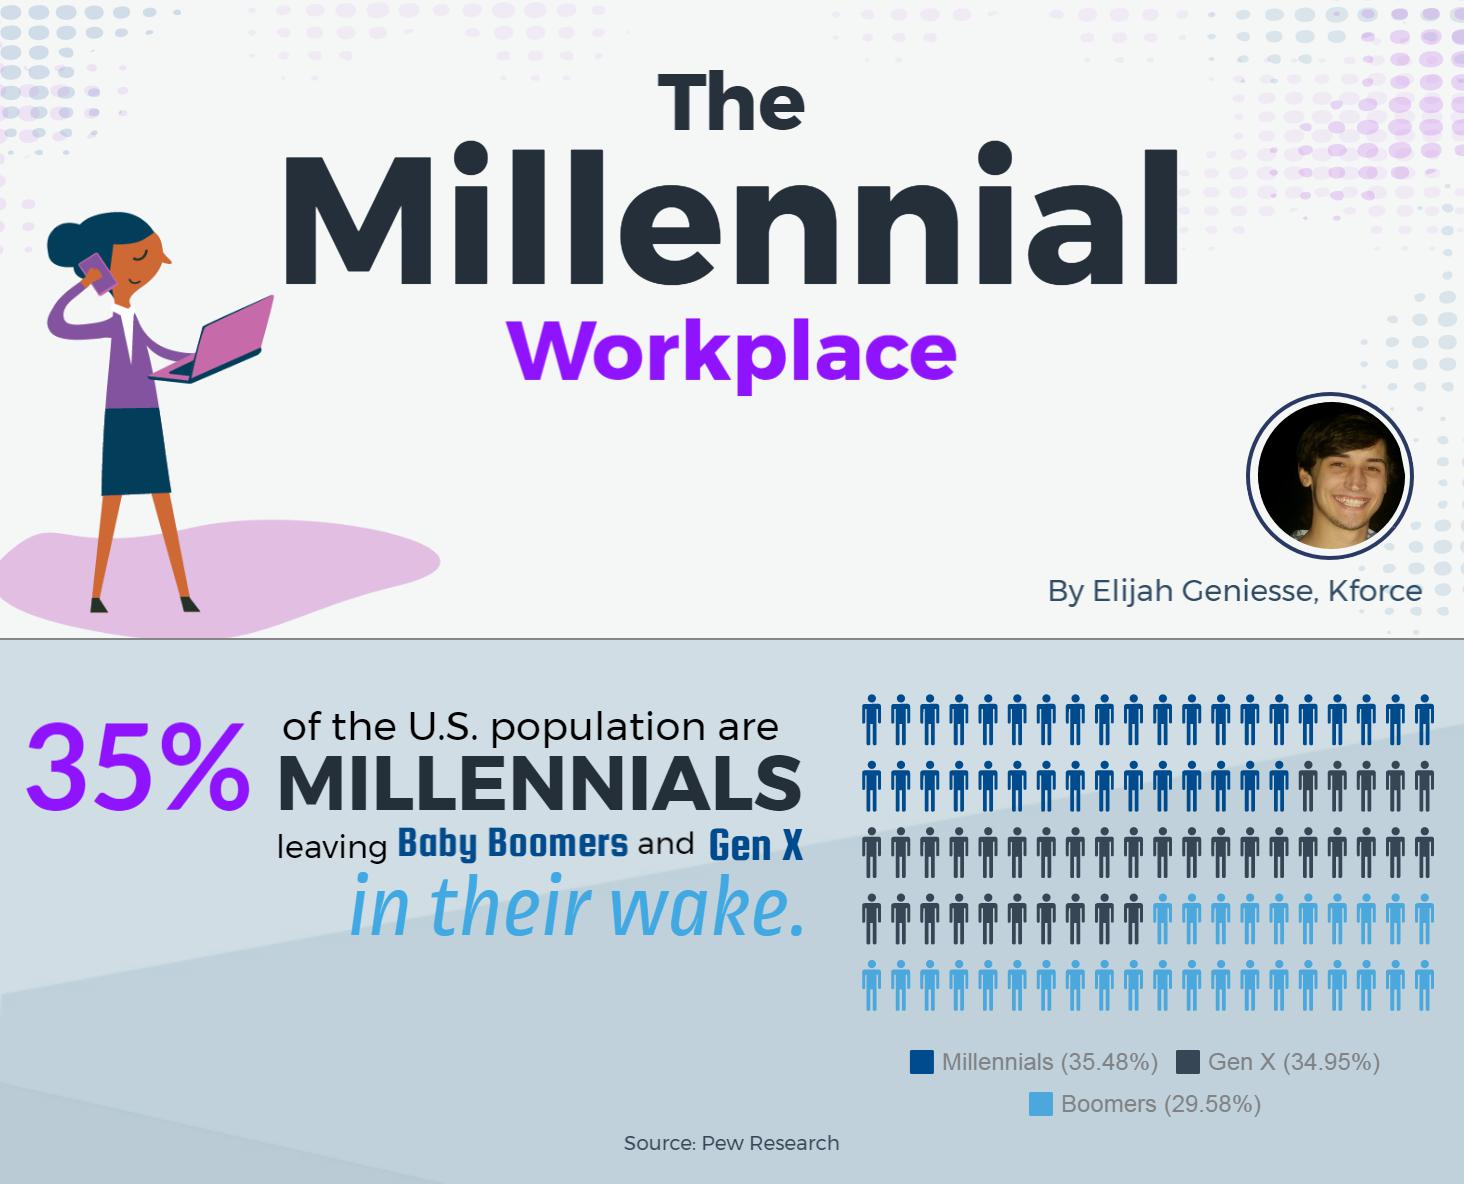 Millennial Workplace- values and ideals